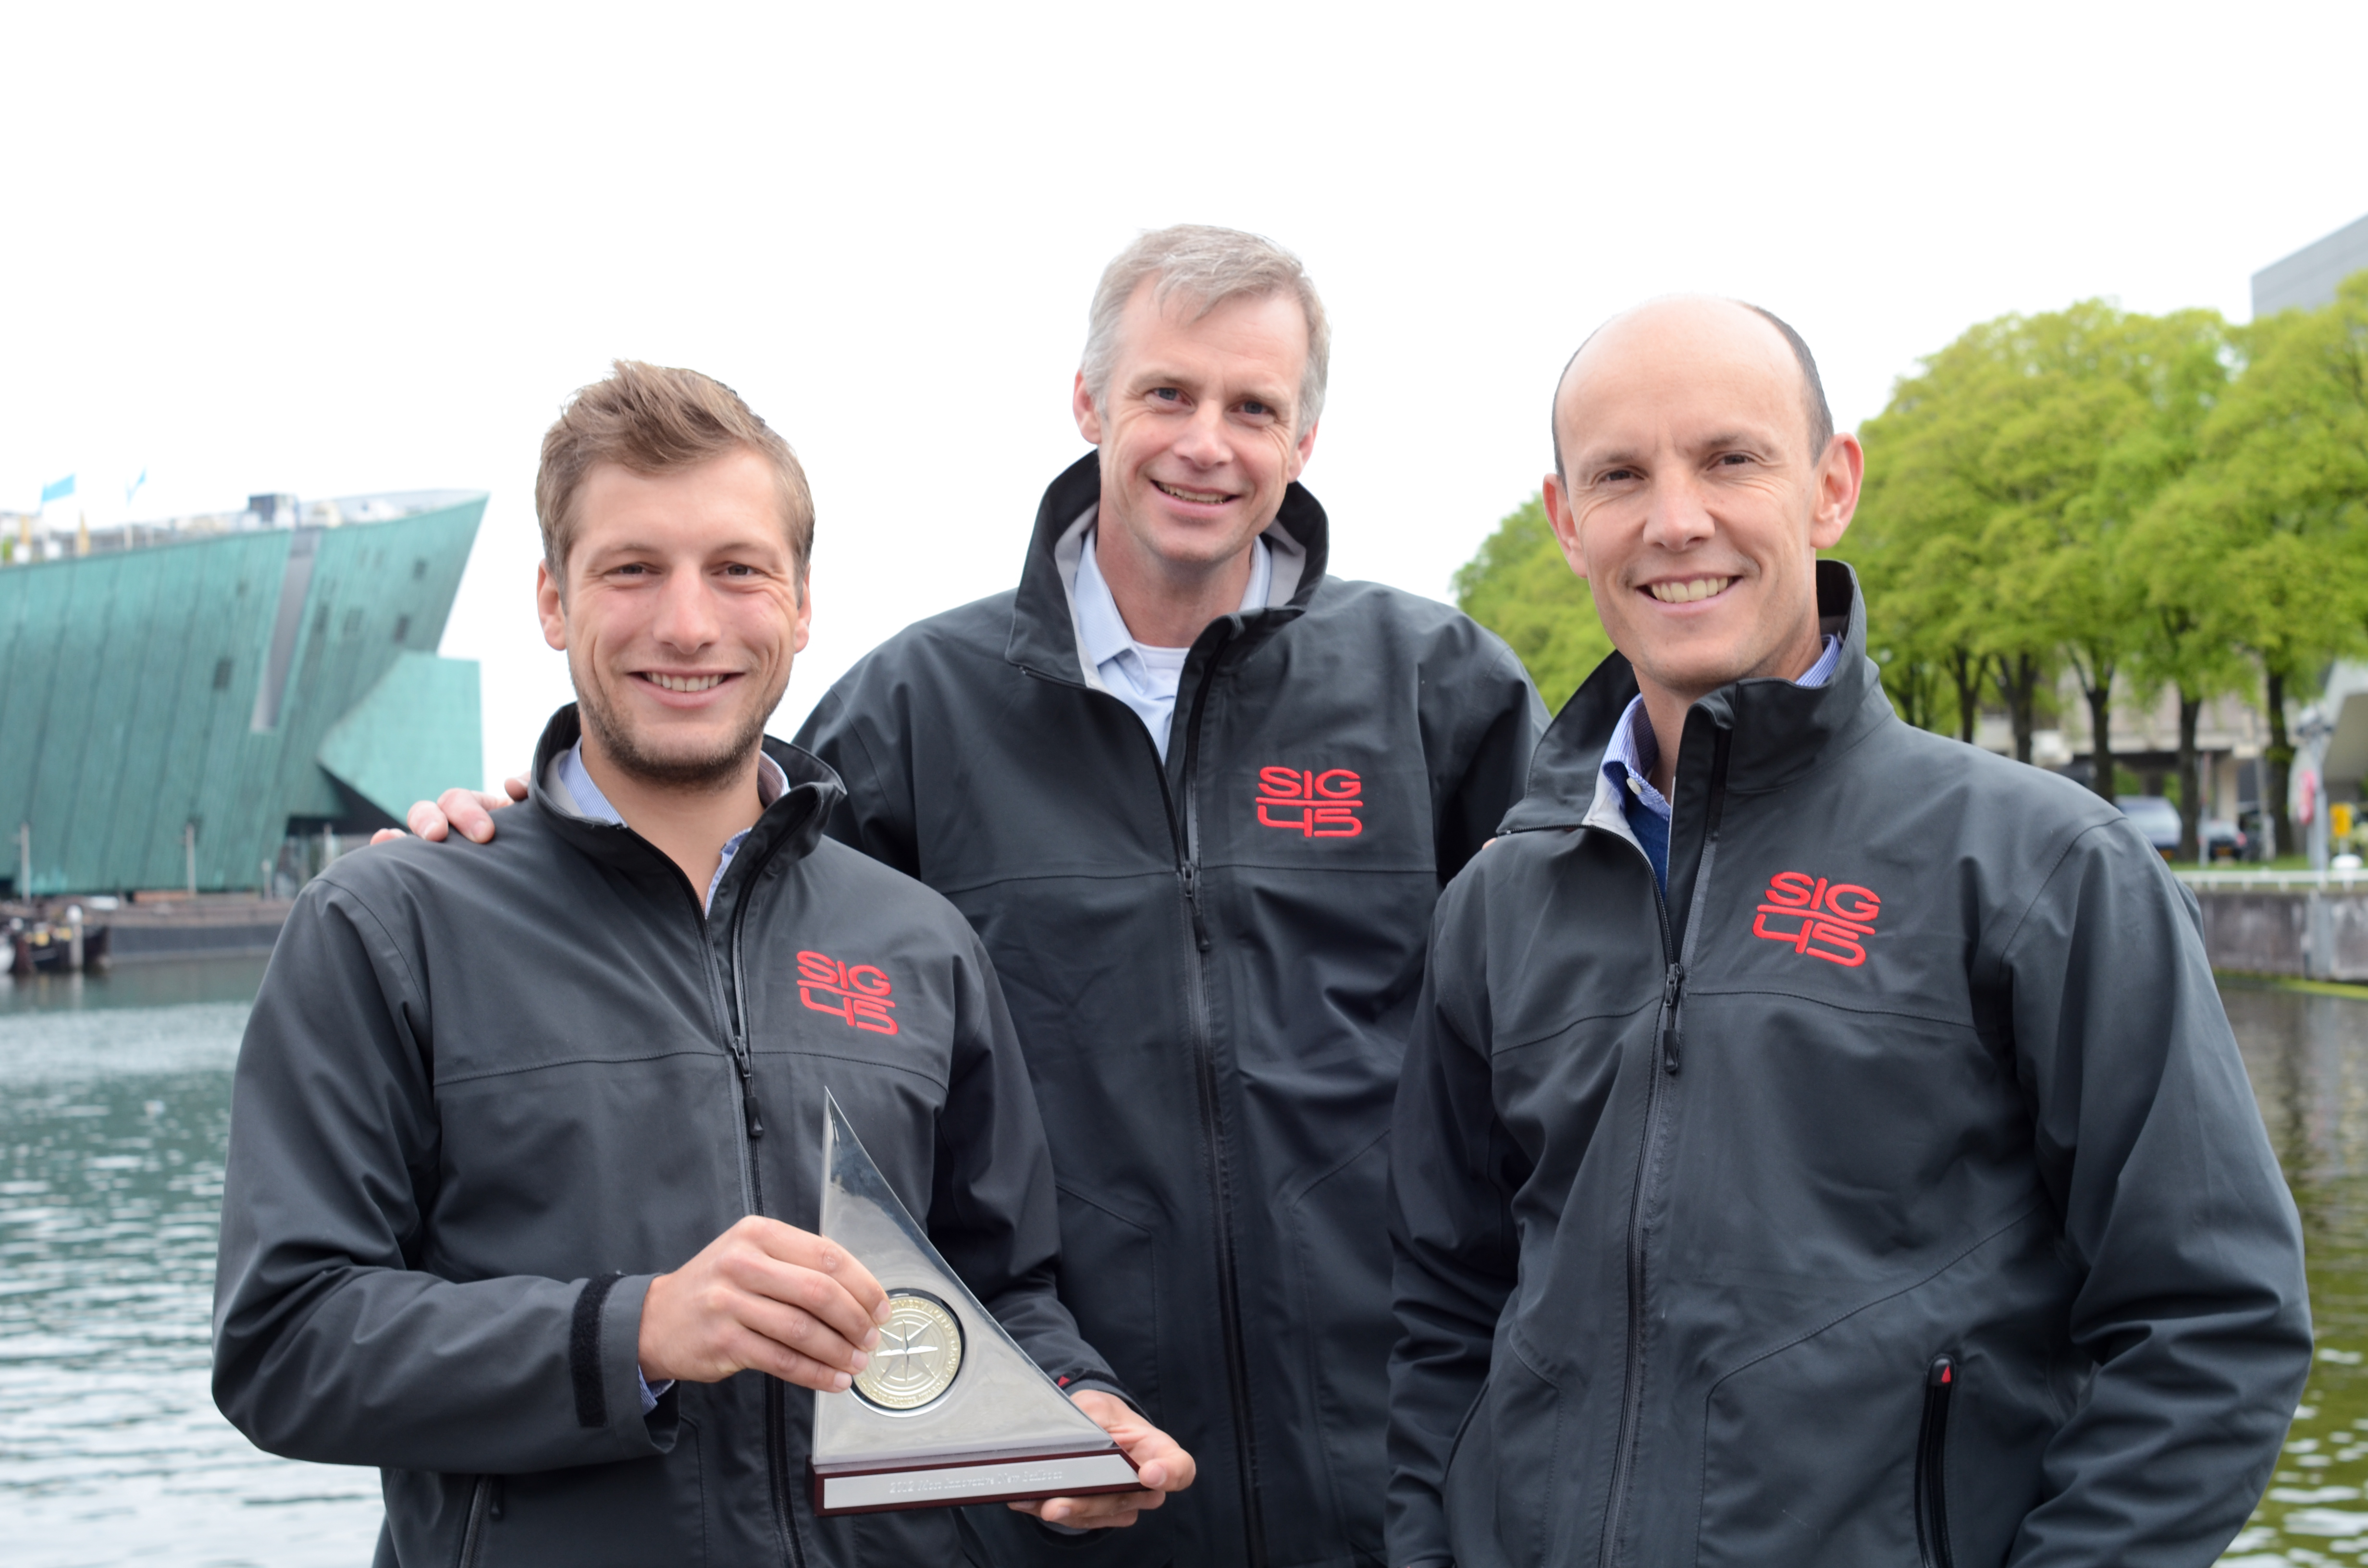 Team Le Breton Yachts with award